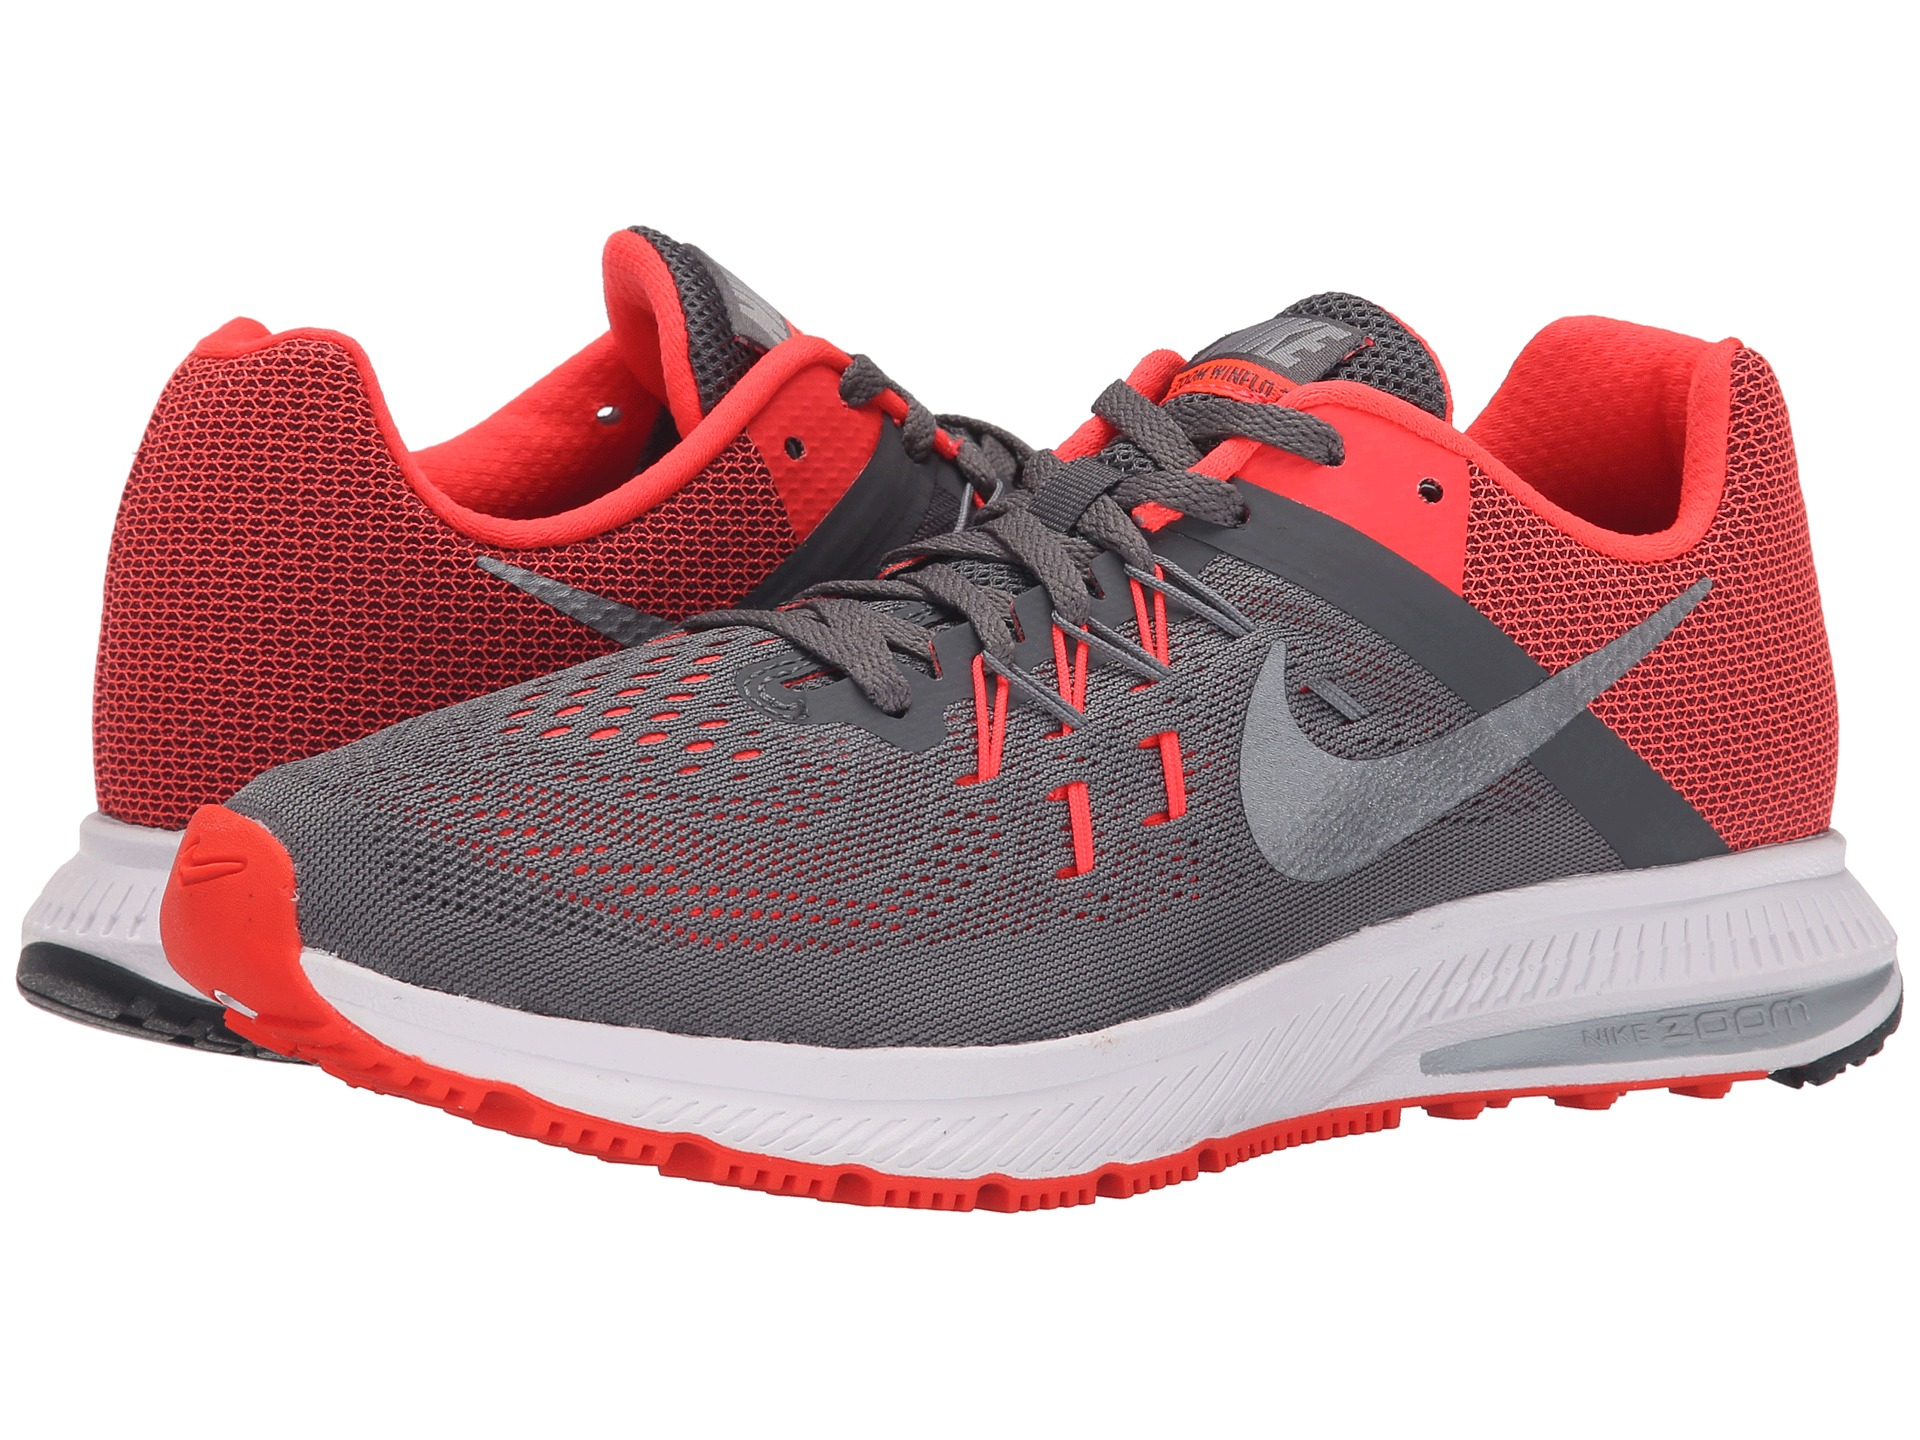 29247a062b322 ... running shoes 0f728 dee40  promo code for lyst nike zoom winflo 2 in red  for men 6dceb c2b52